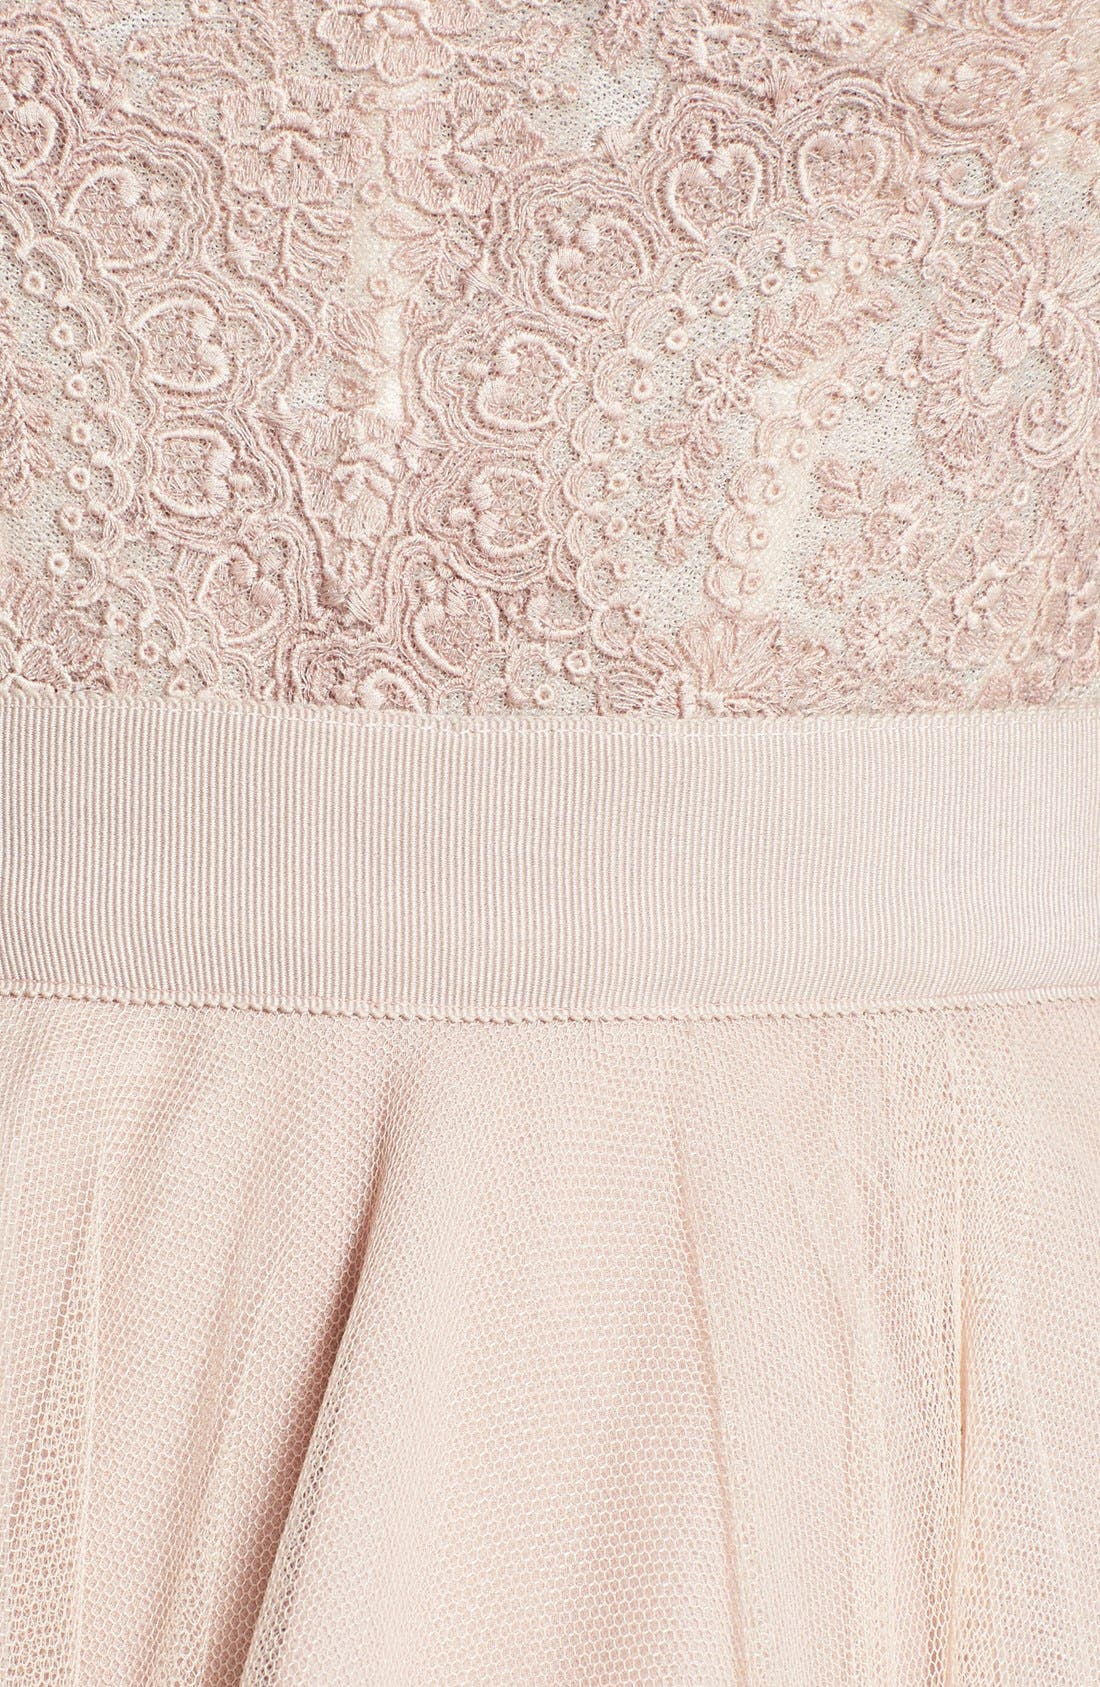 Alternate Image 3  - Watters 'Carina' Lace Bustier (In Stores Only)